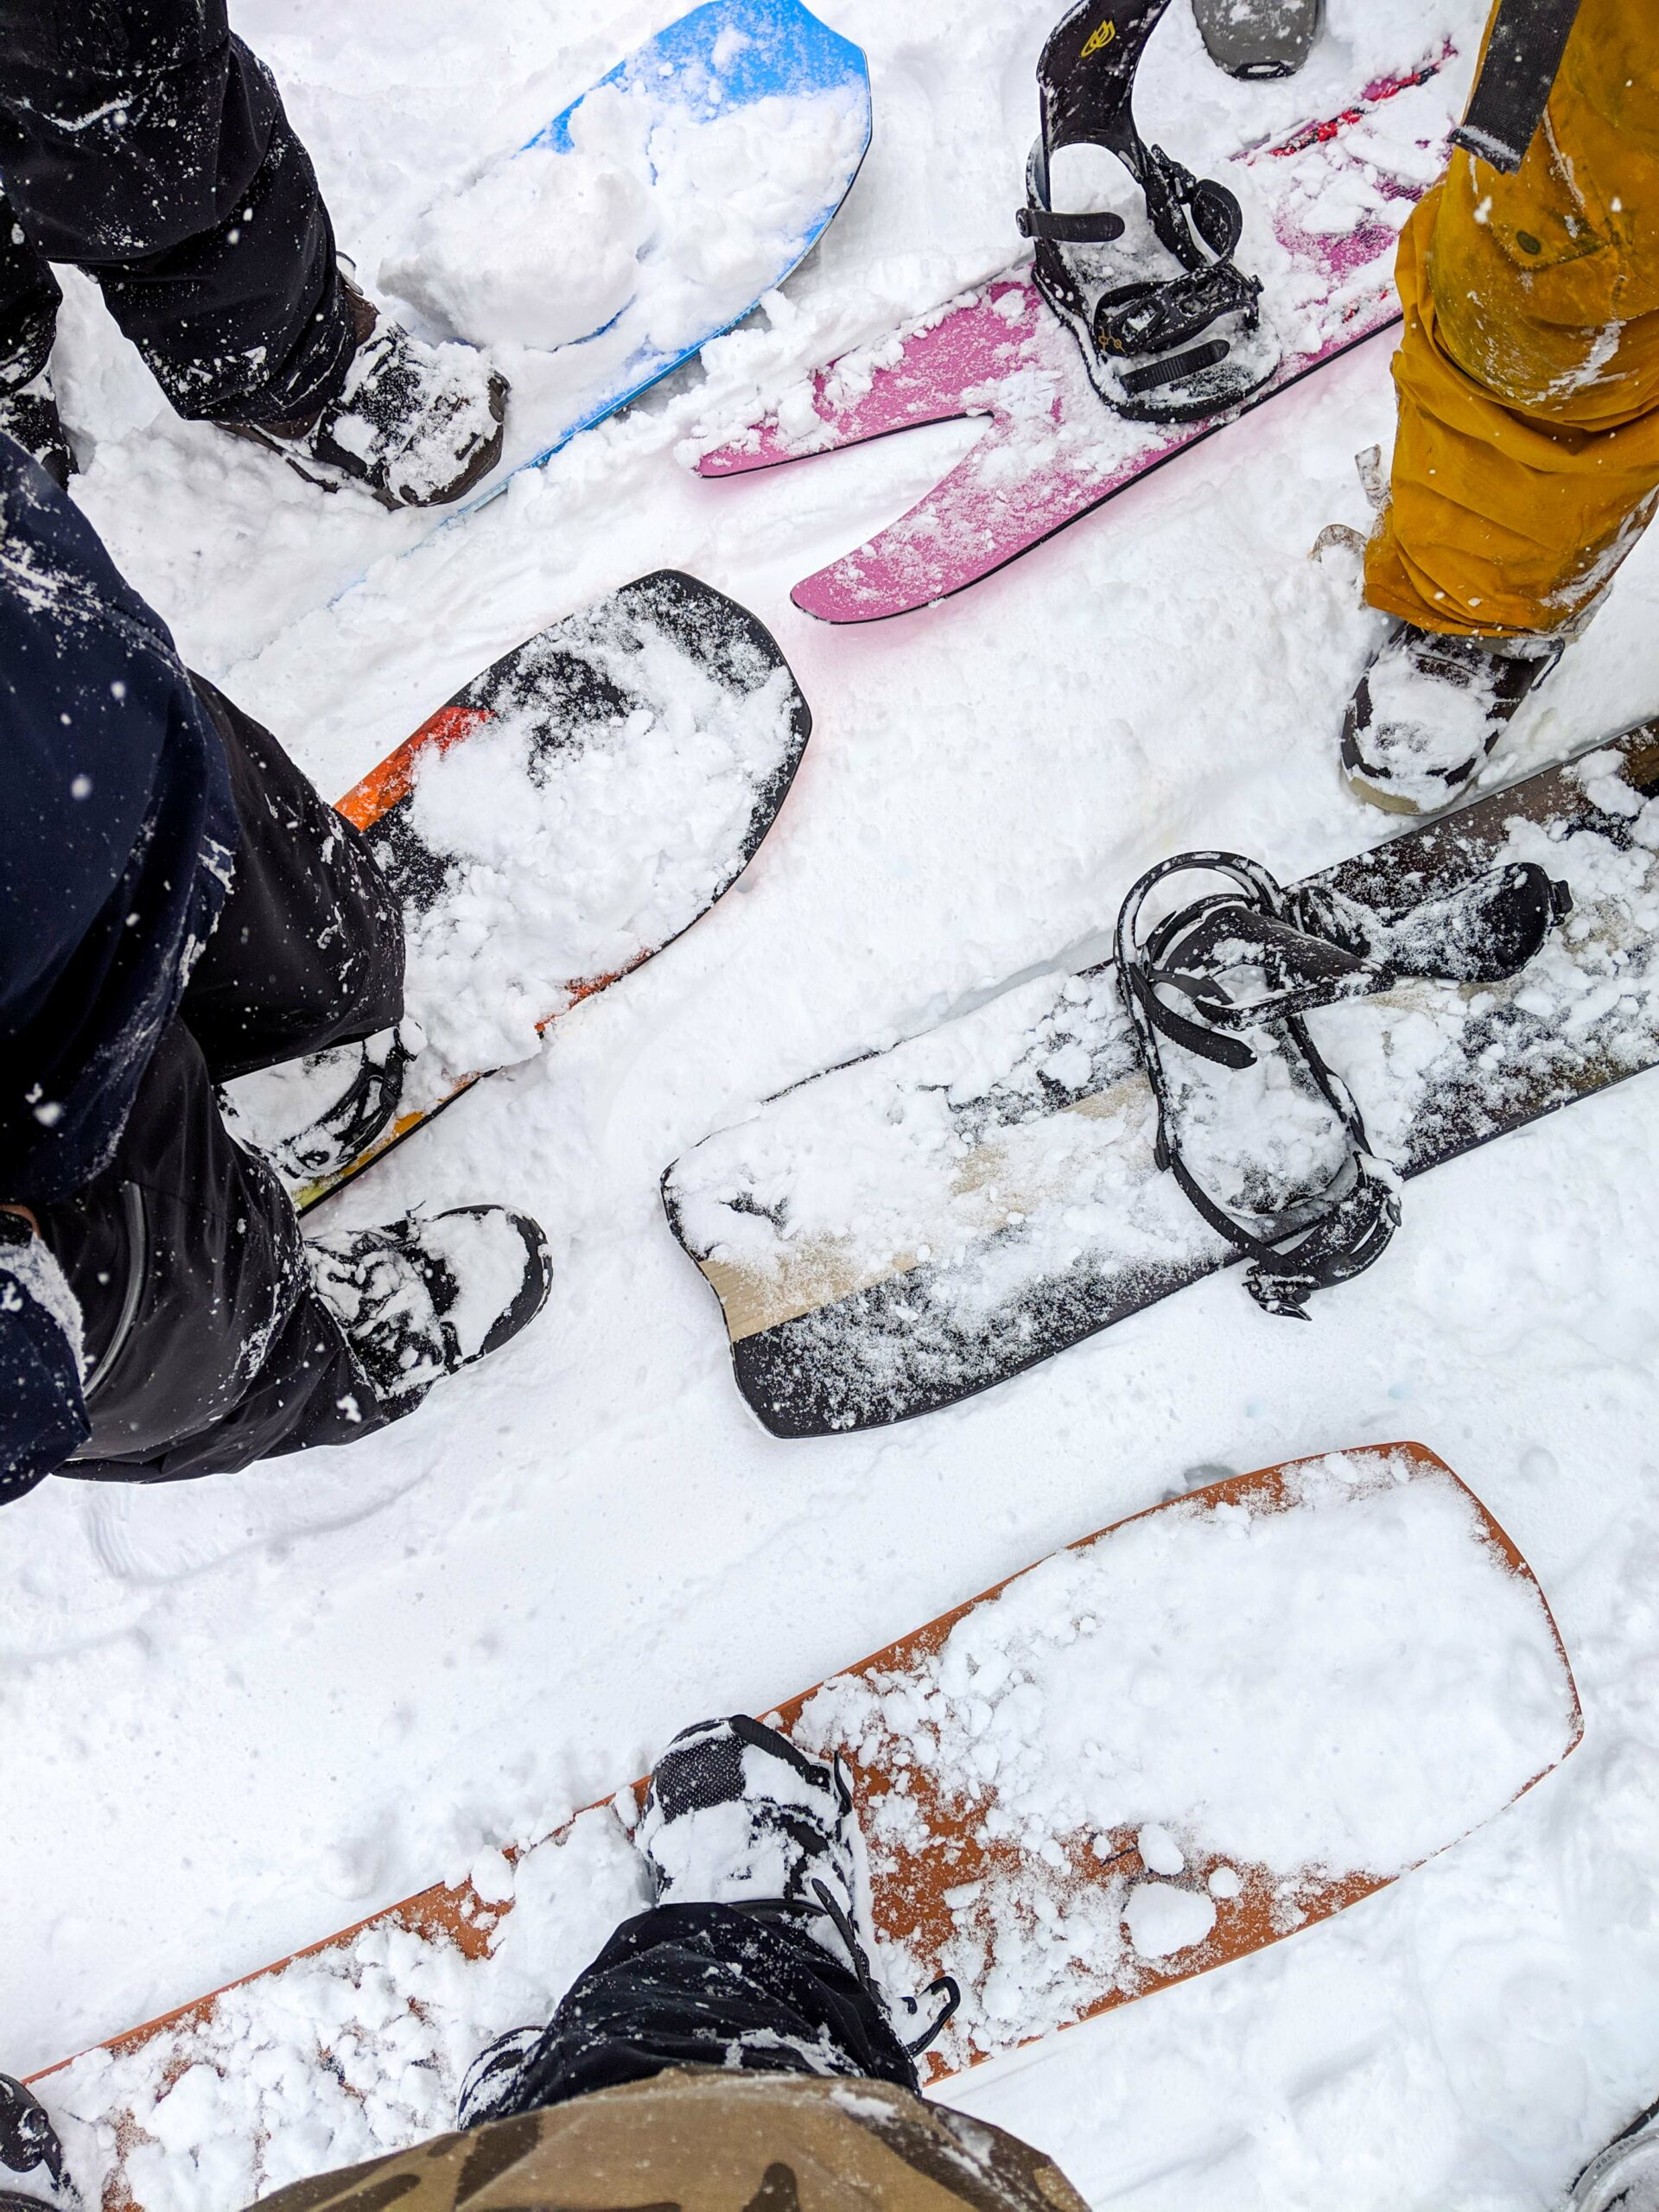 A bunch of snowboards at Jackson Hole Mountain Resort during the 2019 Shaper Summit.